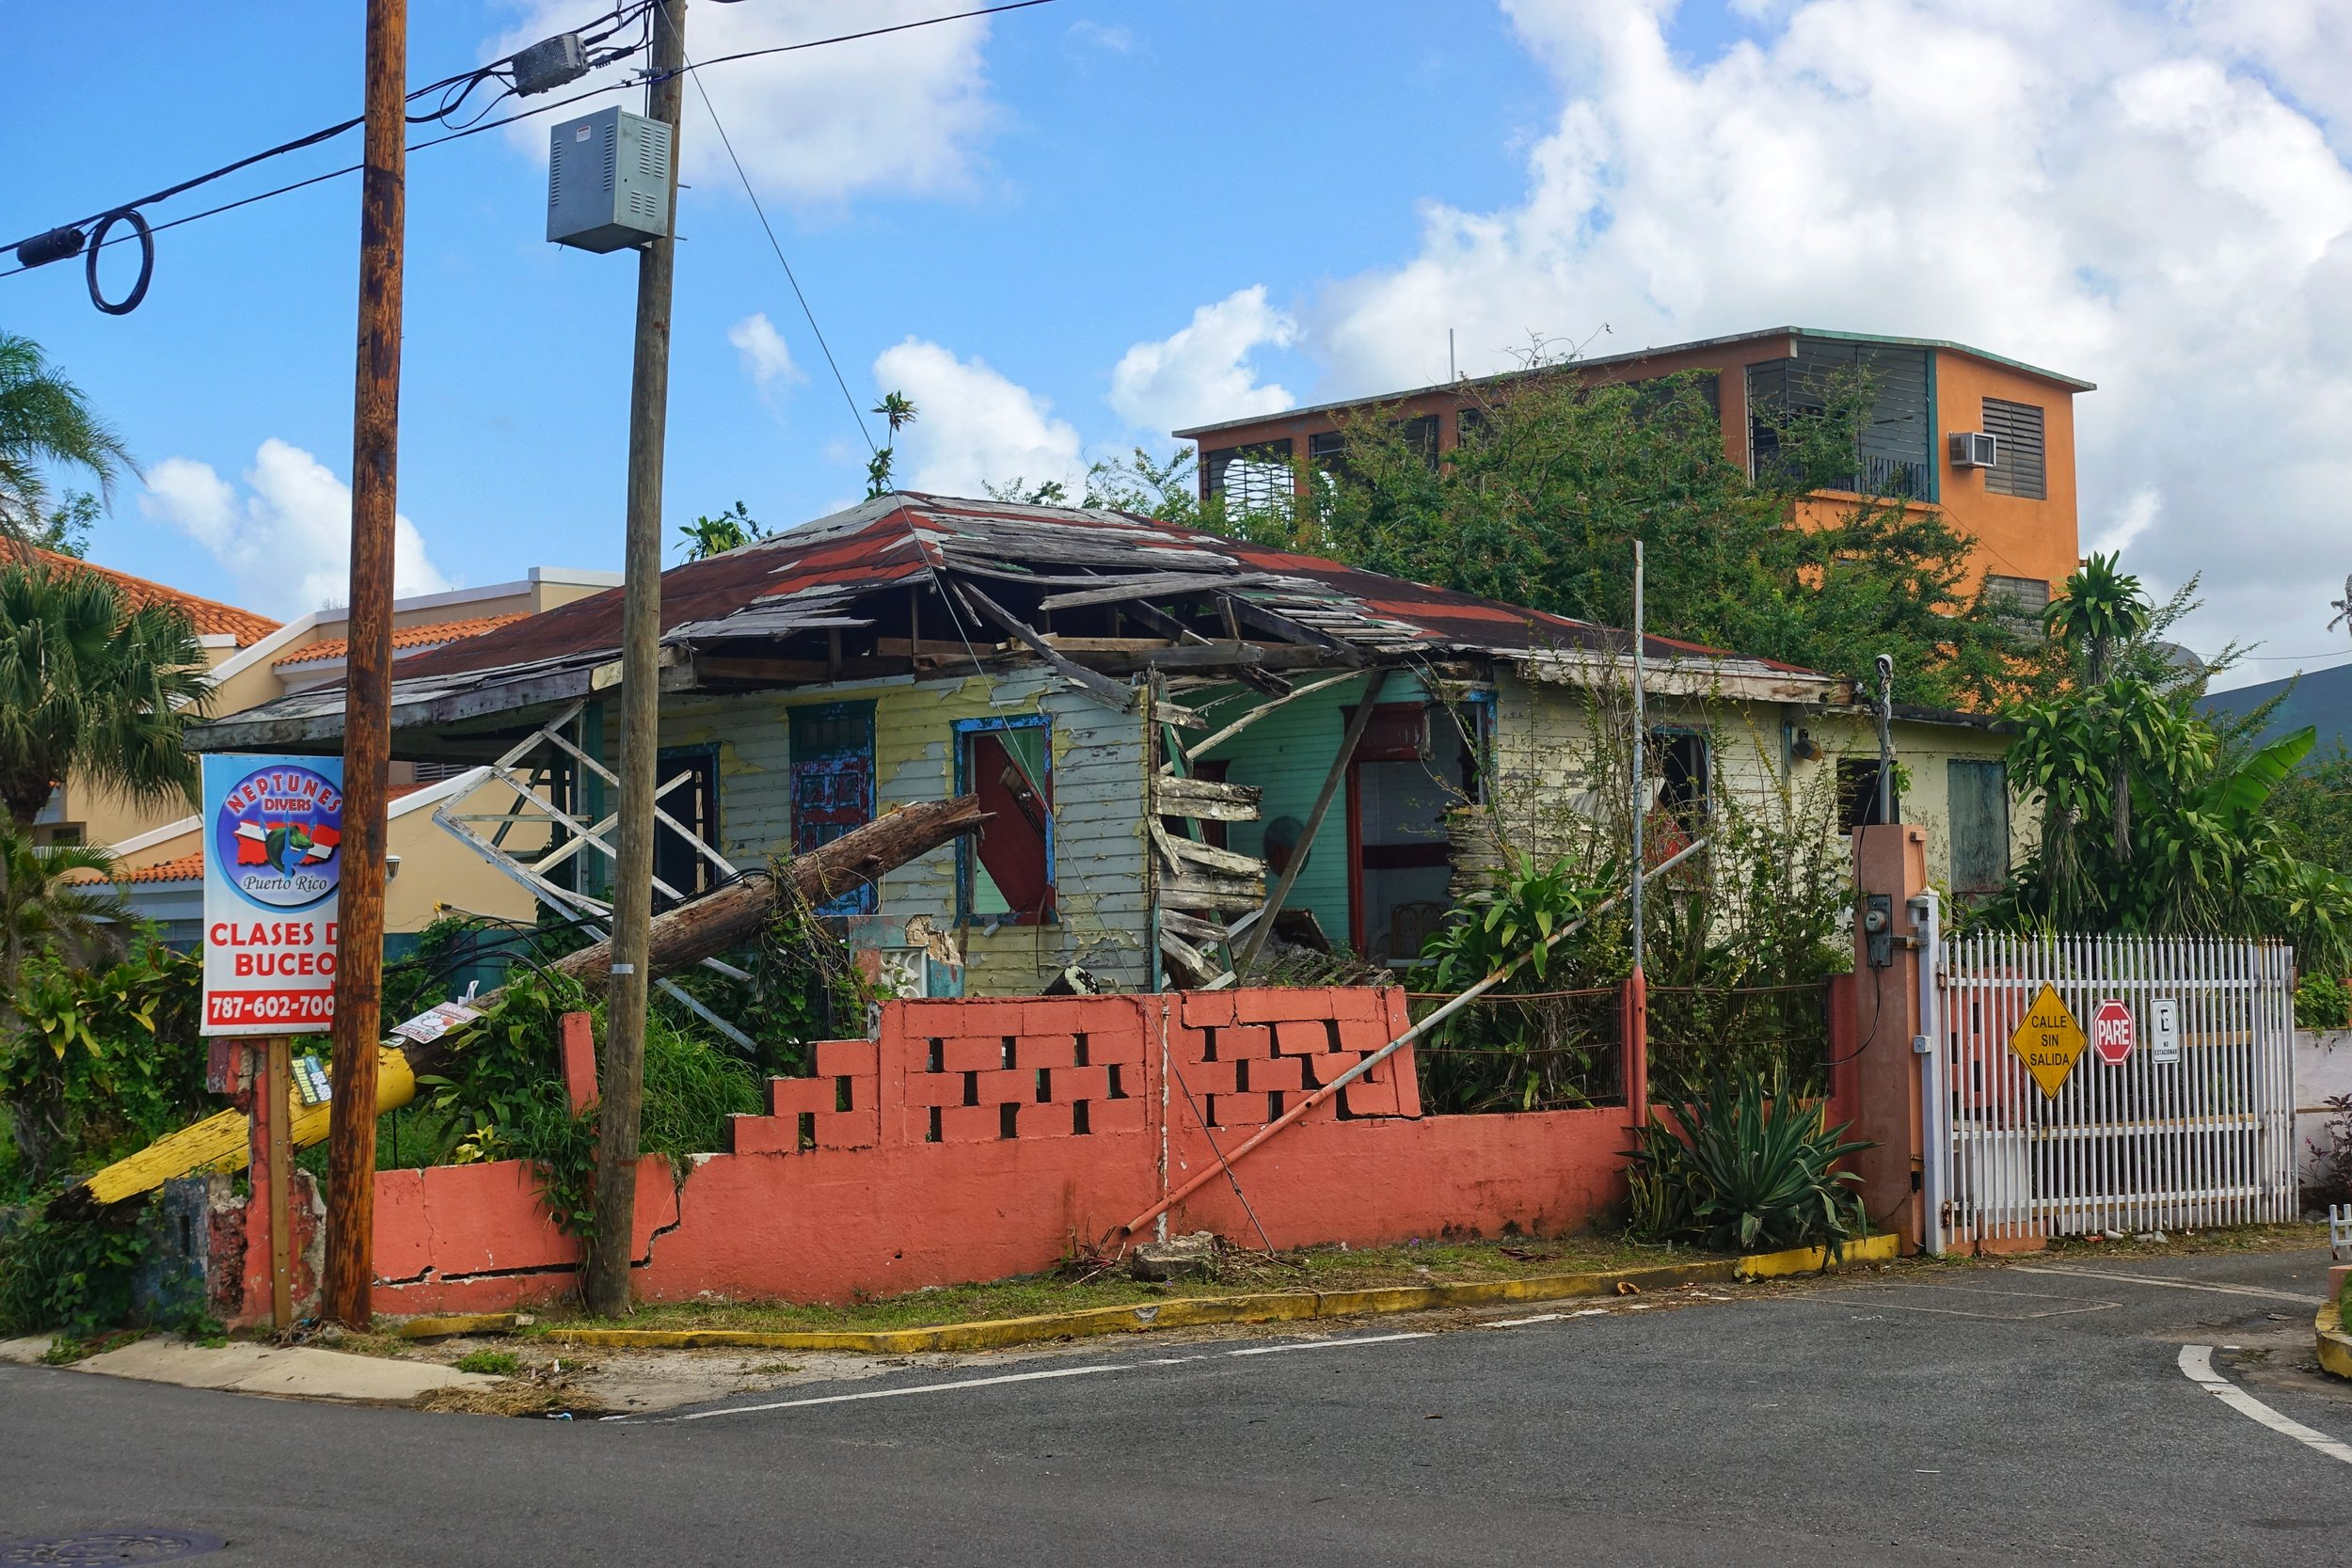 Most of the homes and businesses I saw along the coast between Cataño and Dorado on this day were destroyed and abandoned.